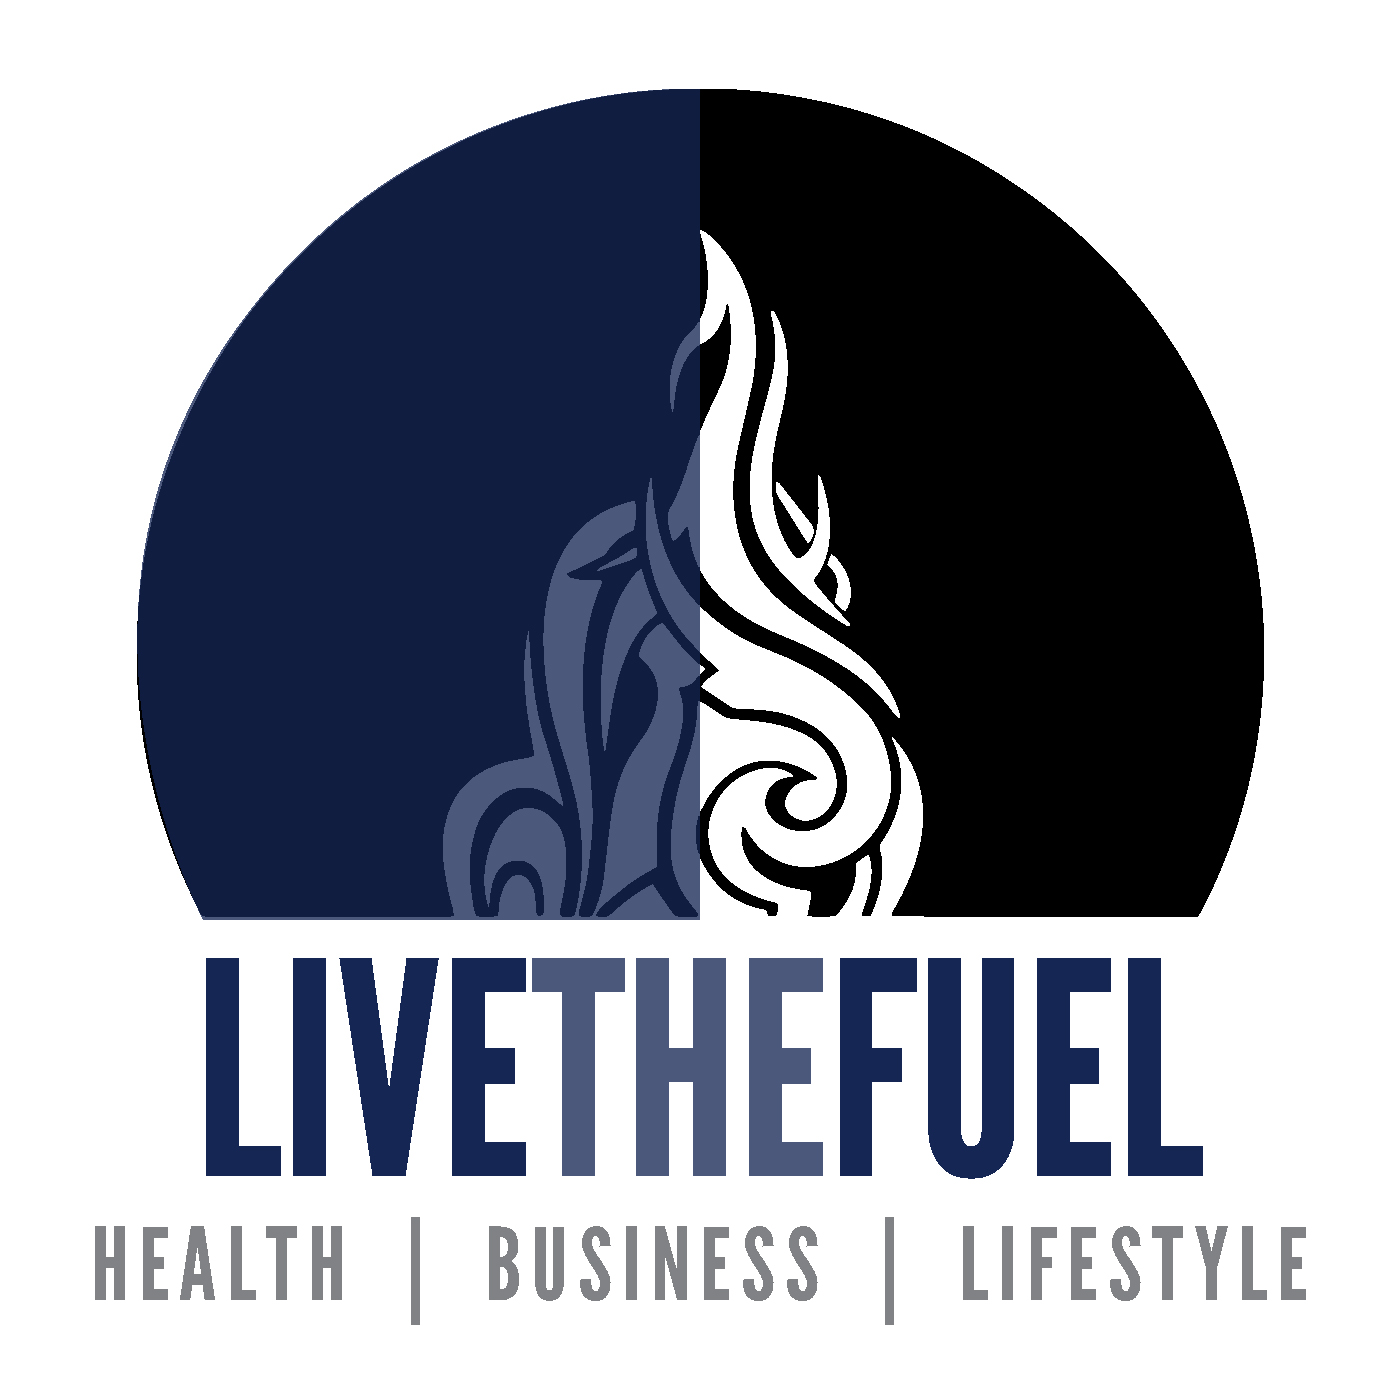 LIVETHEFUEL Health Business Lifestyle by Scott W Mulvaney on